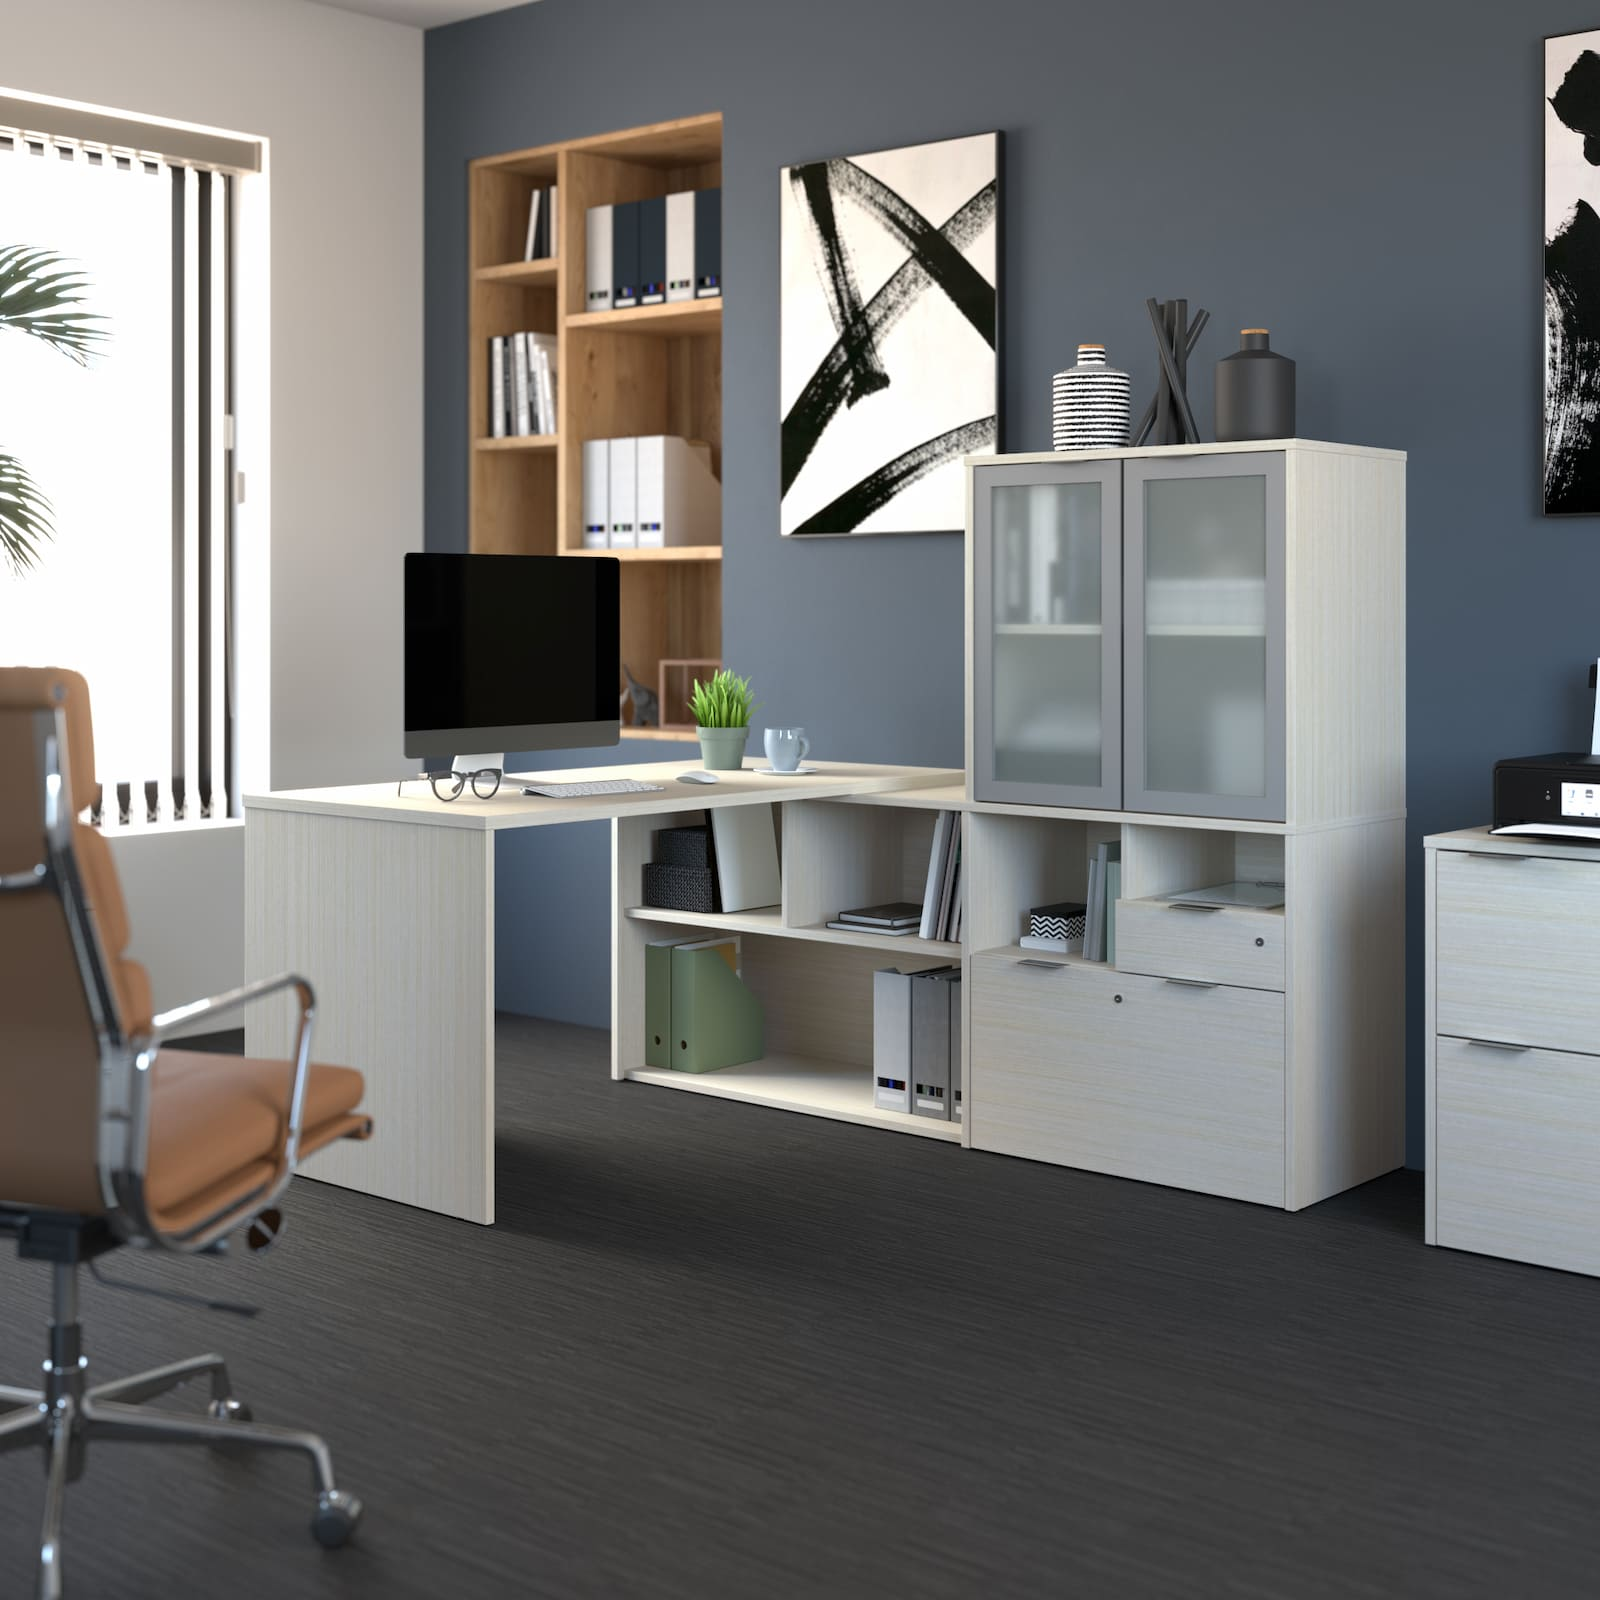 Adding Storage to Your Furniture – L-Shaped Desk with Hutch, Shelving Unit, and More